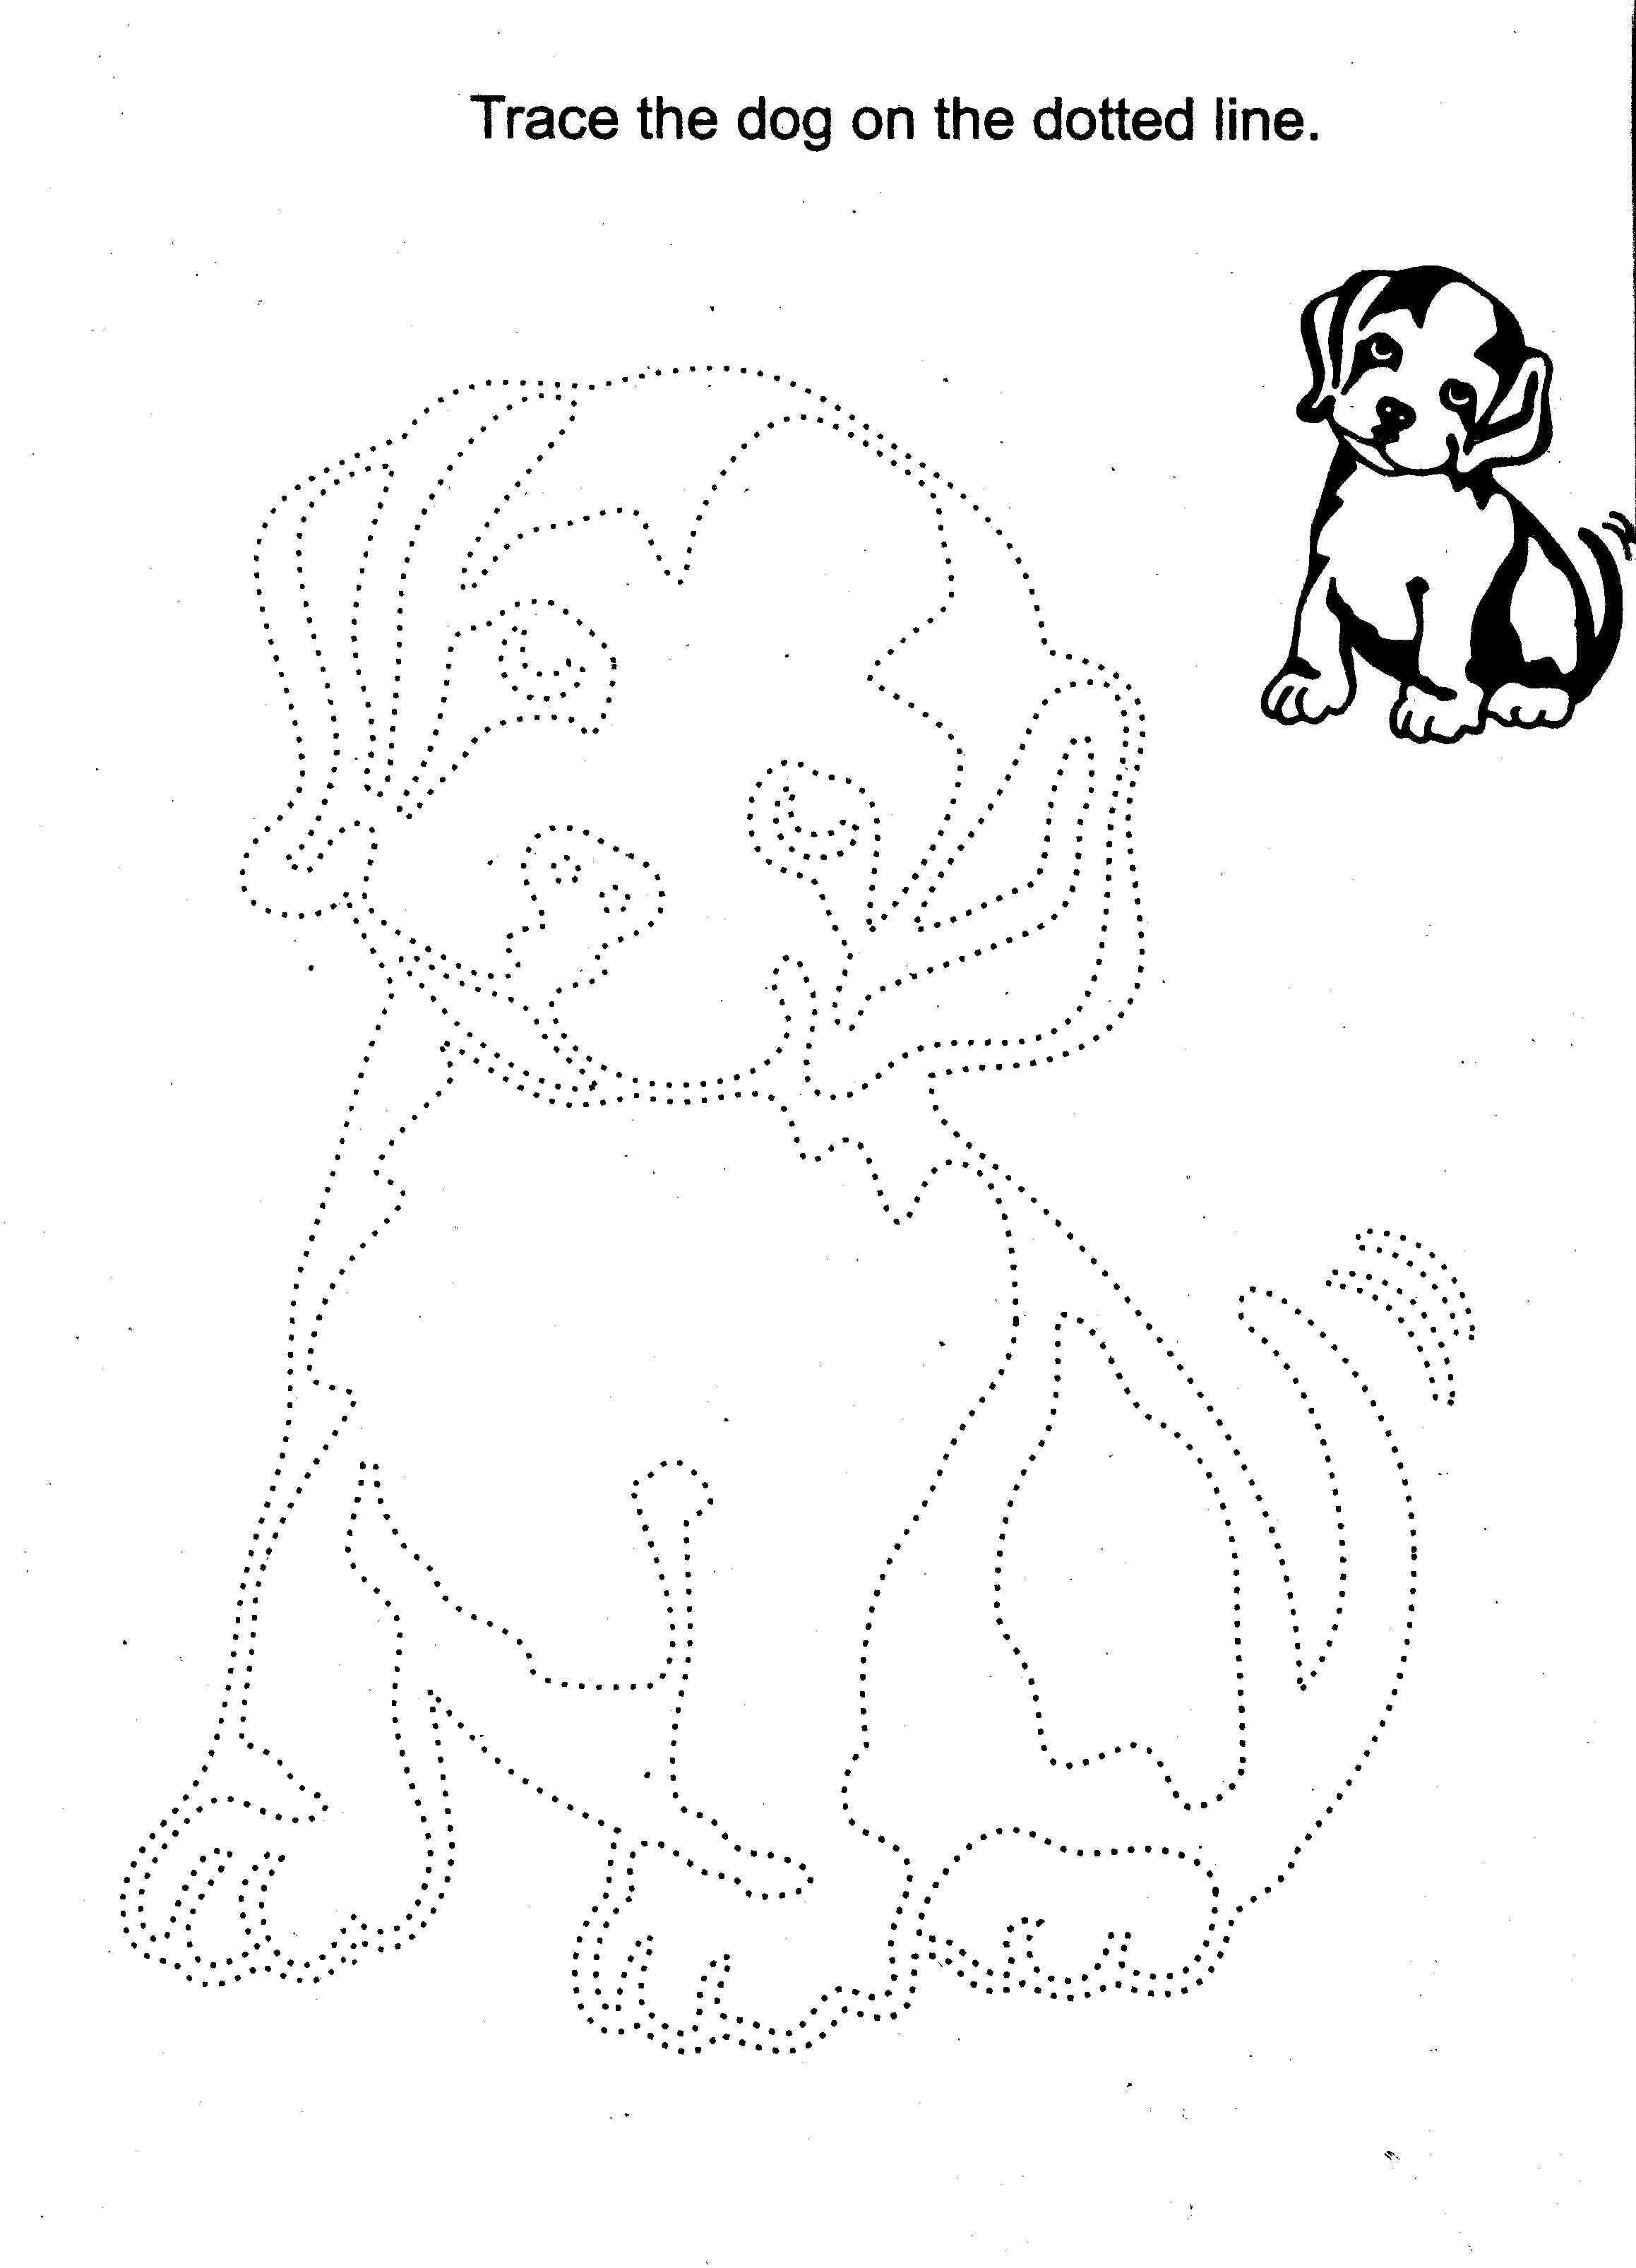 Golden retriever puppy coloring pages printable coloring, batman coloring pages